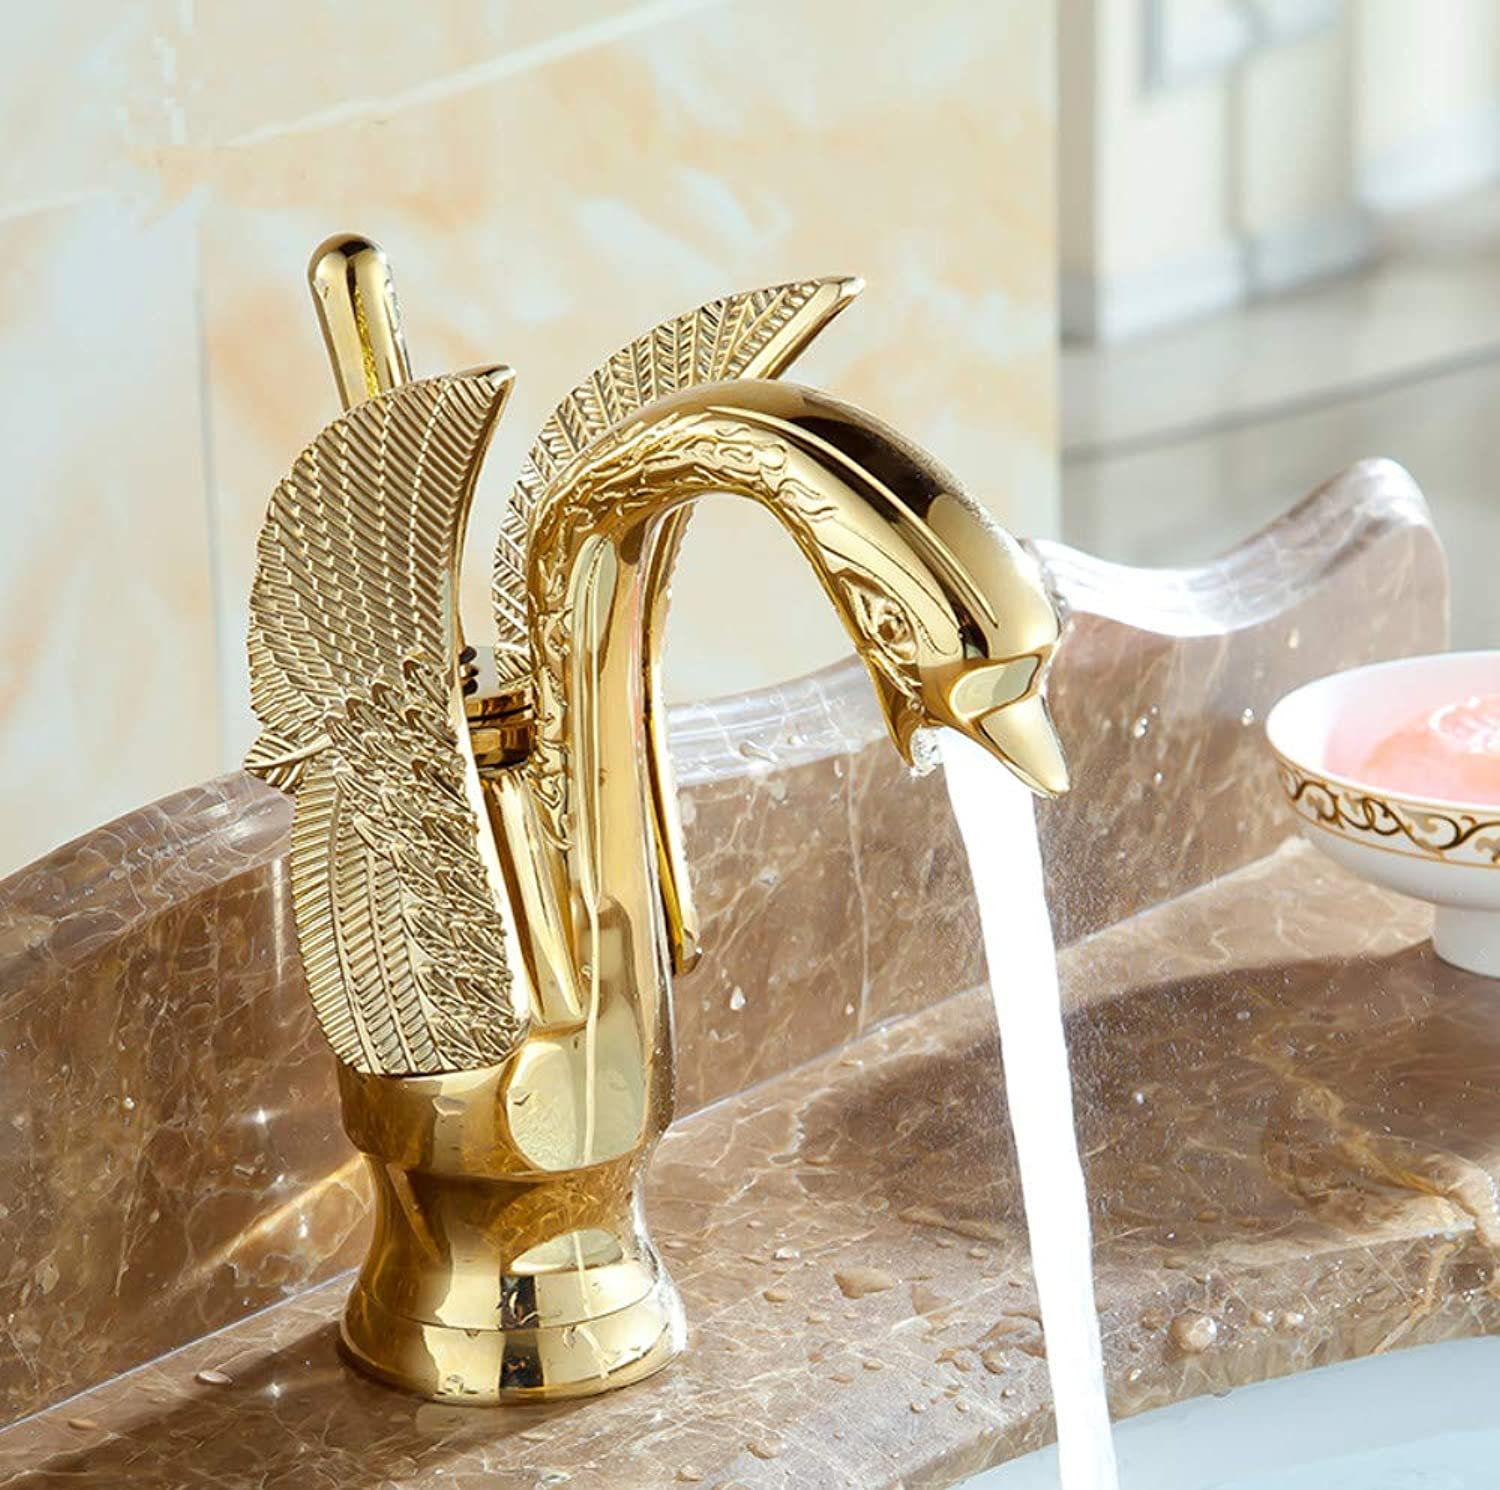 redOOY Swan shape antique Bathroom brass basin faucet hot and cold, Copper retro sink basin faucet mixer water tap golden